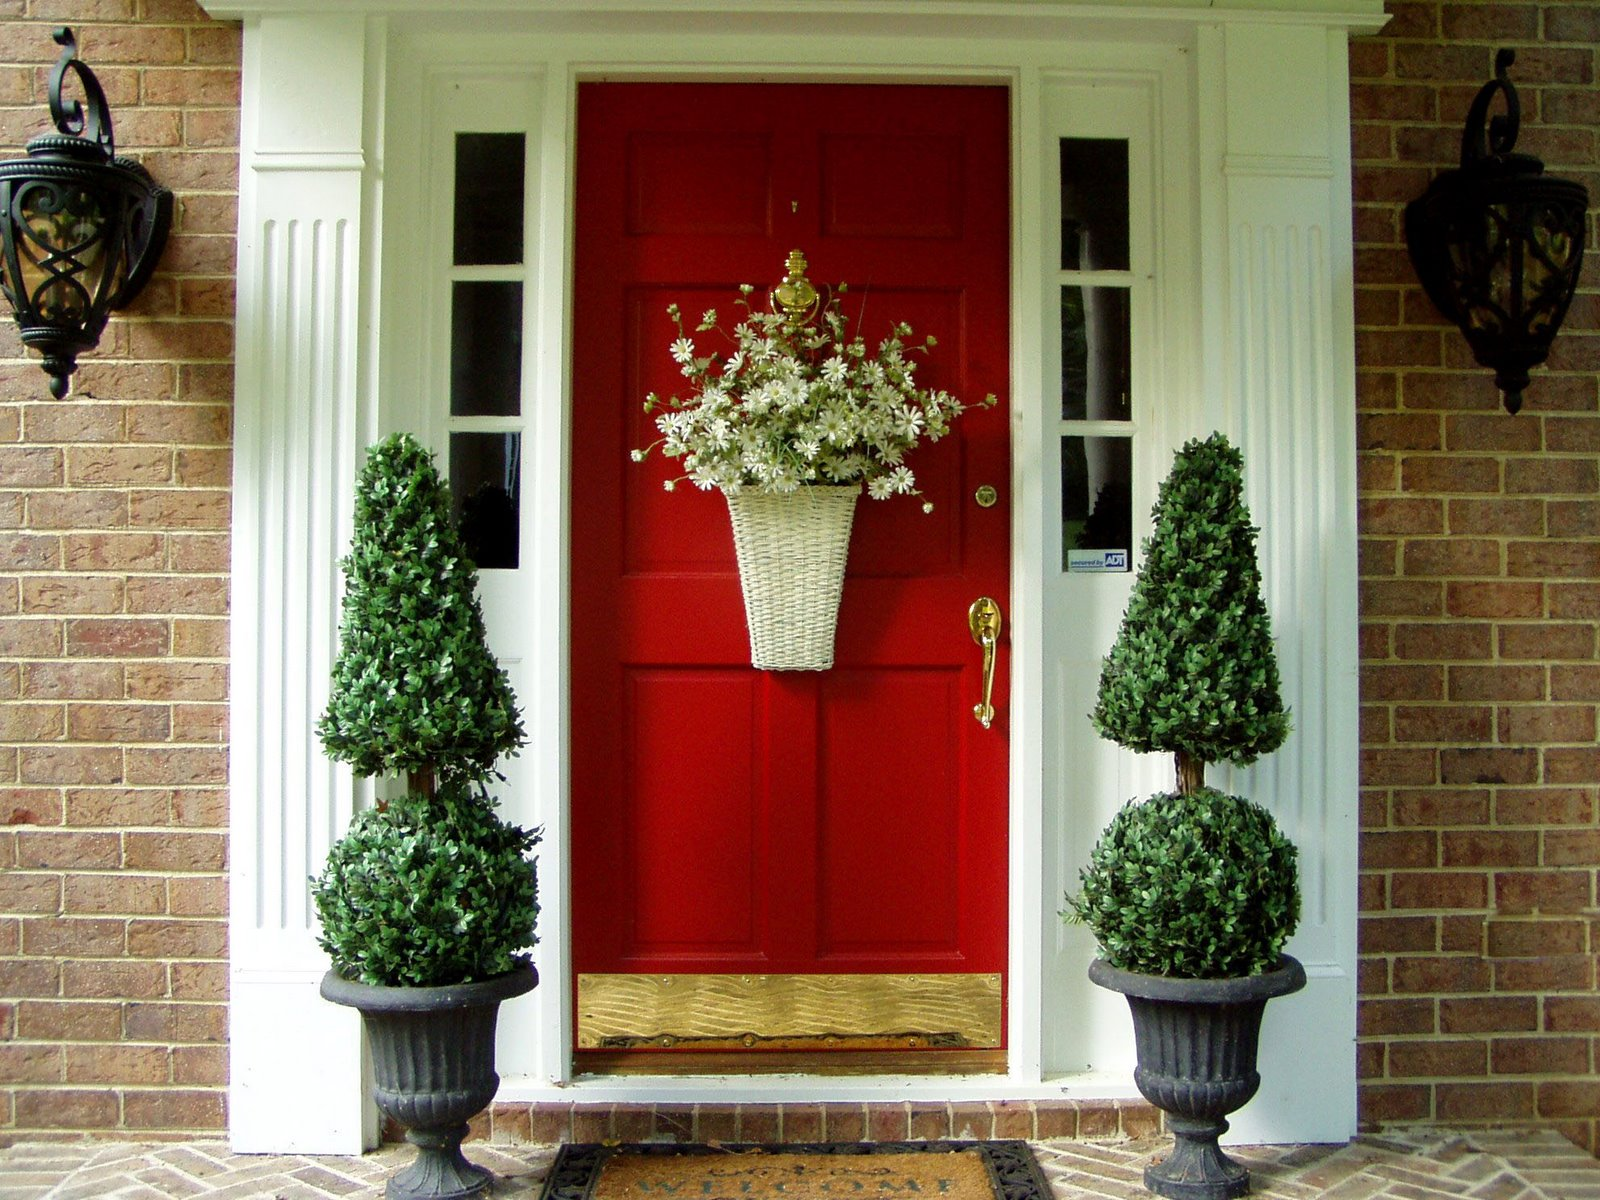 Decorative front doors can be ordered in the UK